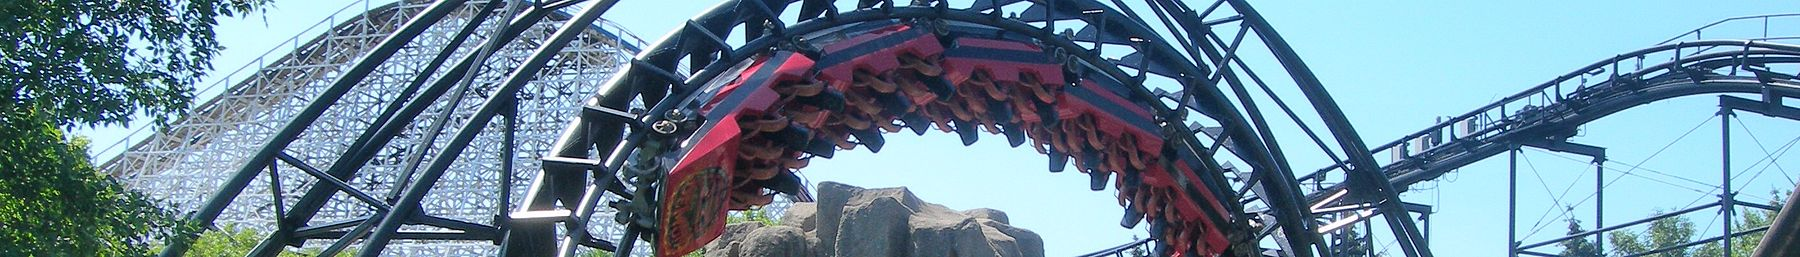 WV banner Far North suburbs Demon rollercoaster at Six Flags Great America.jpg